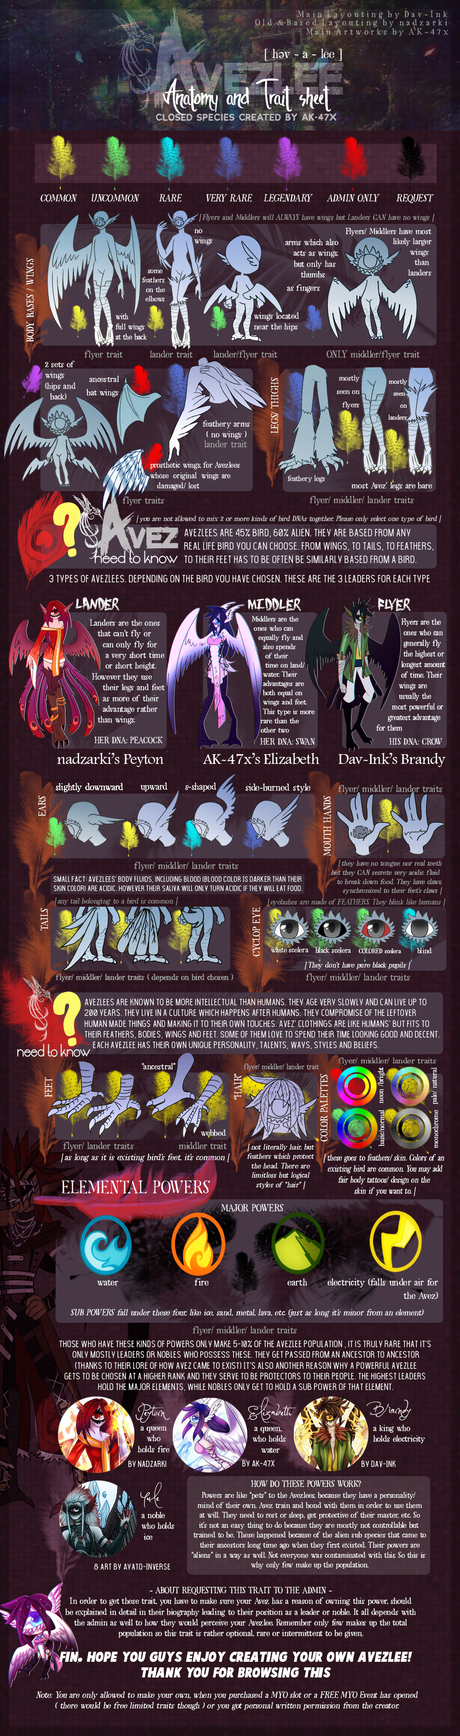 Avezlees Traits and Anatomy Sheet. by AK-47x